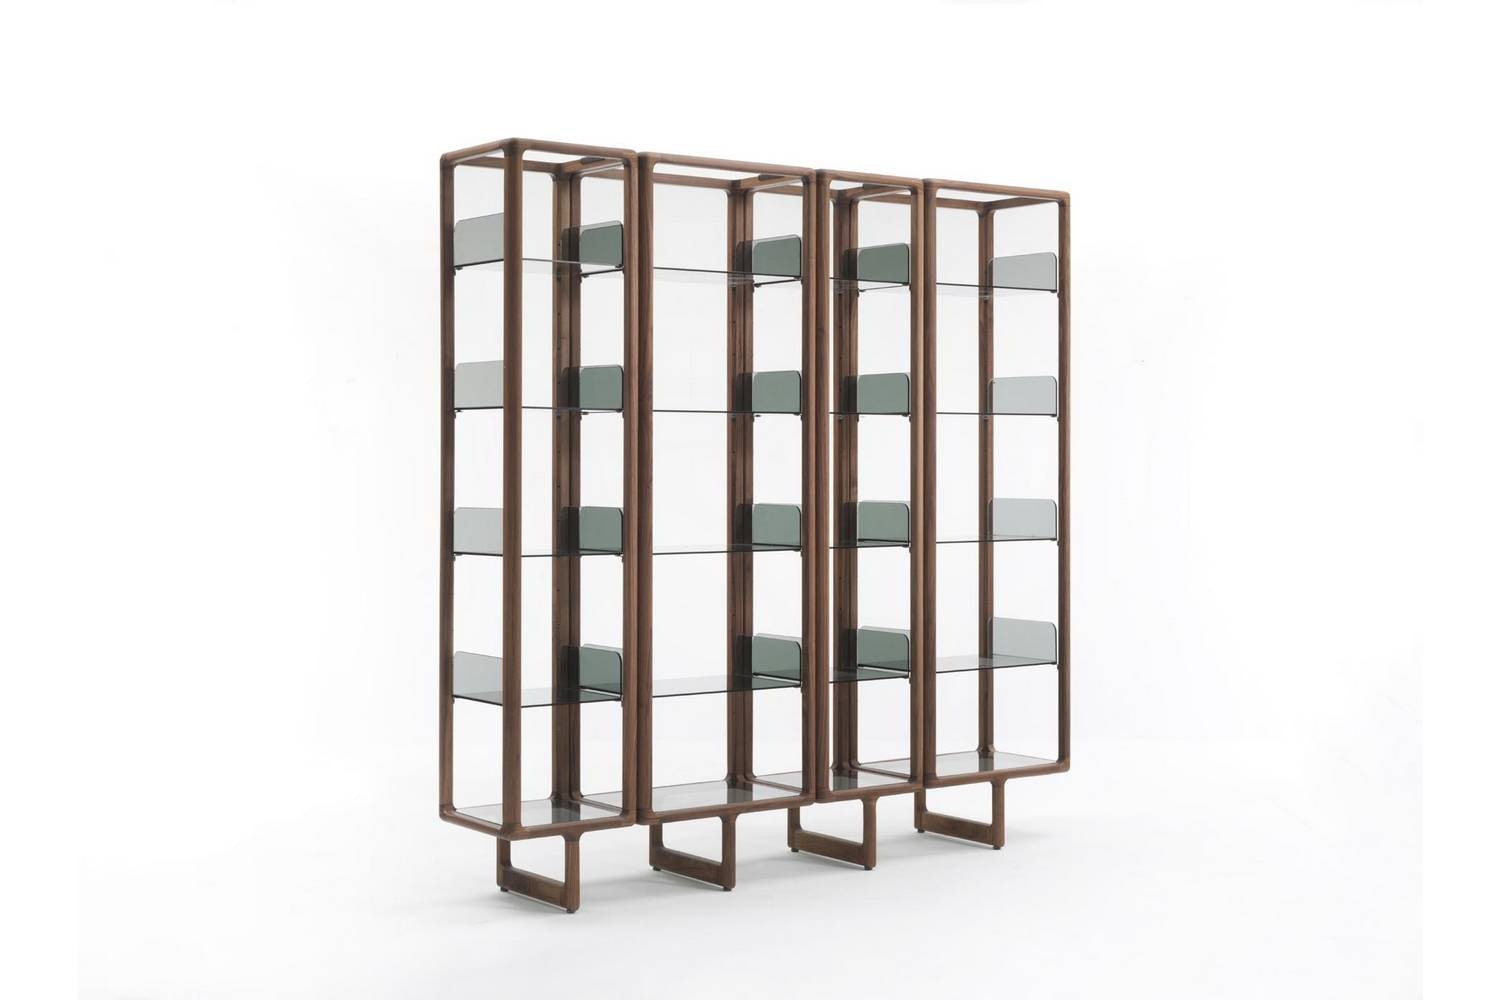 Myria Bookcase by D. Dolcini for Porada